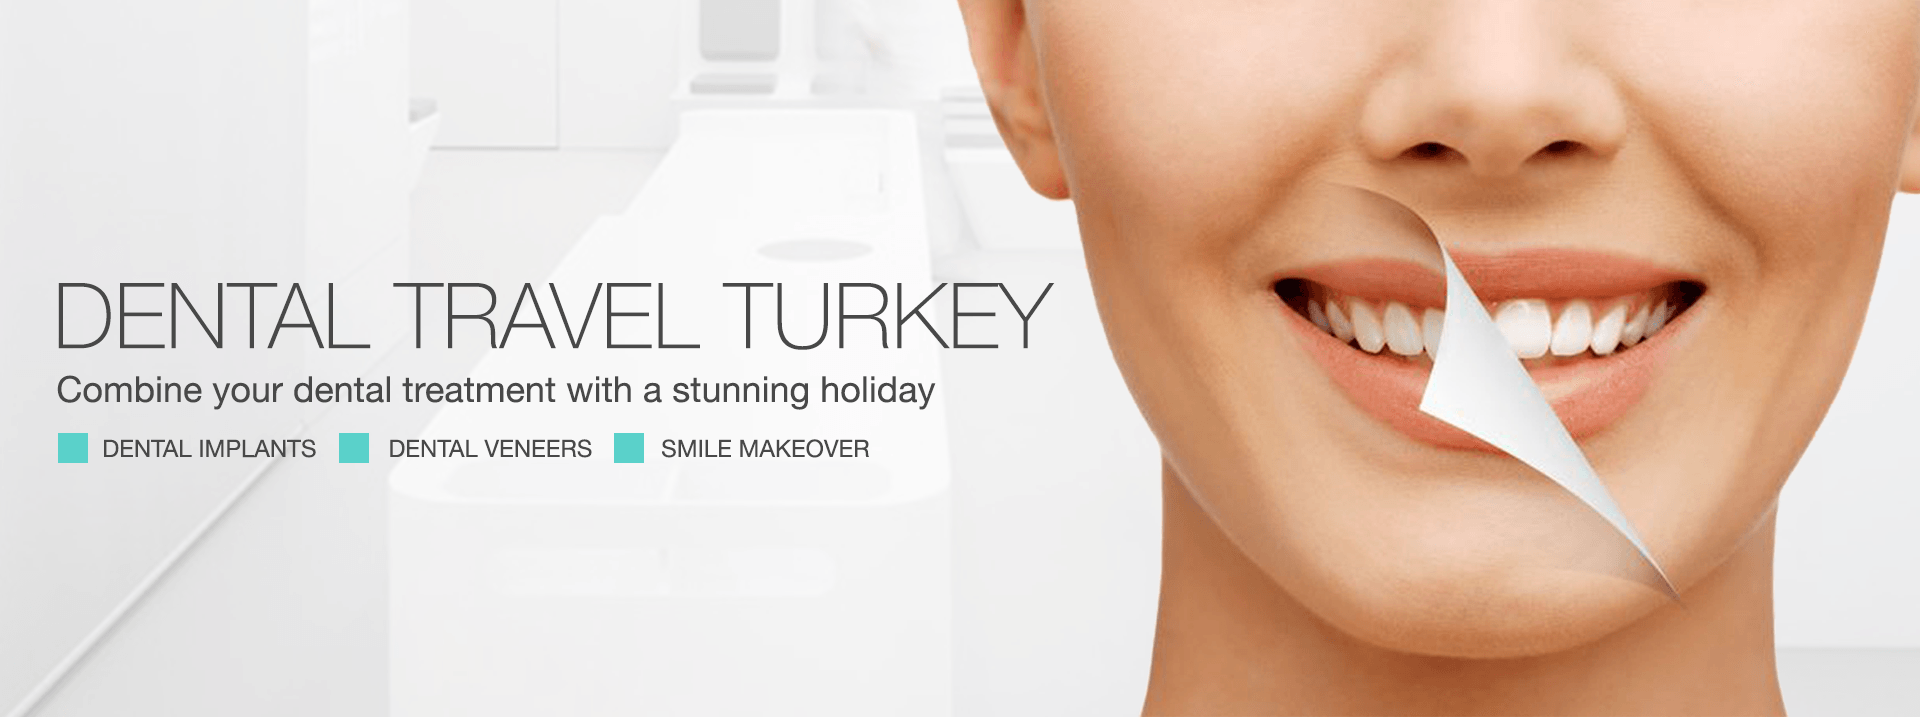 Dental Travel Turkey